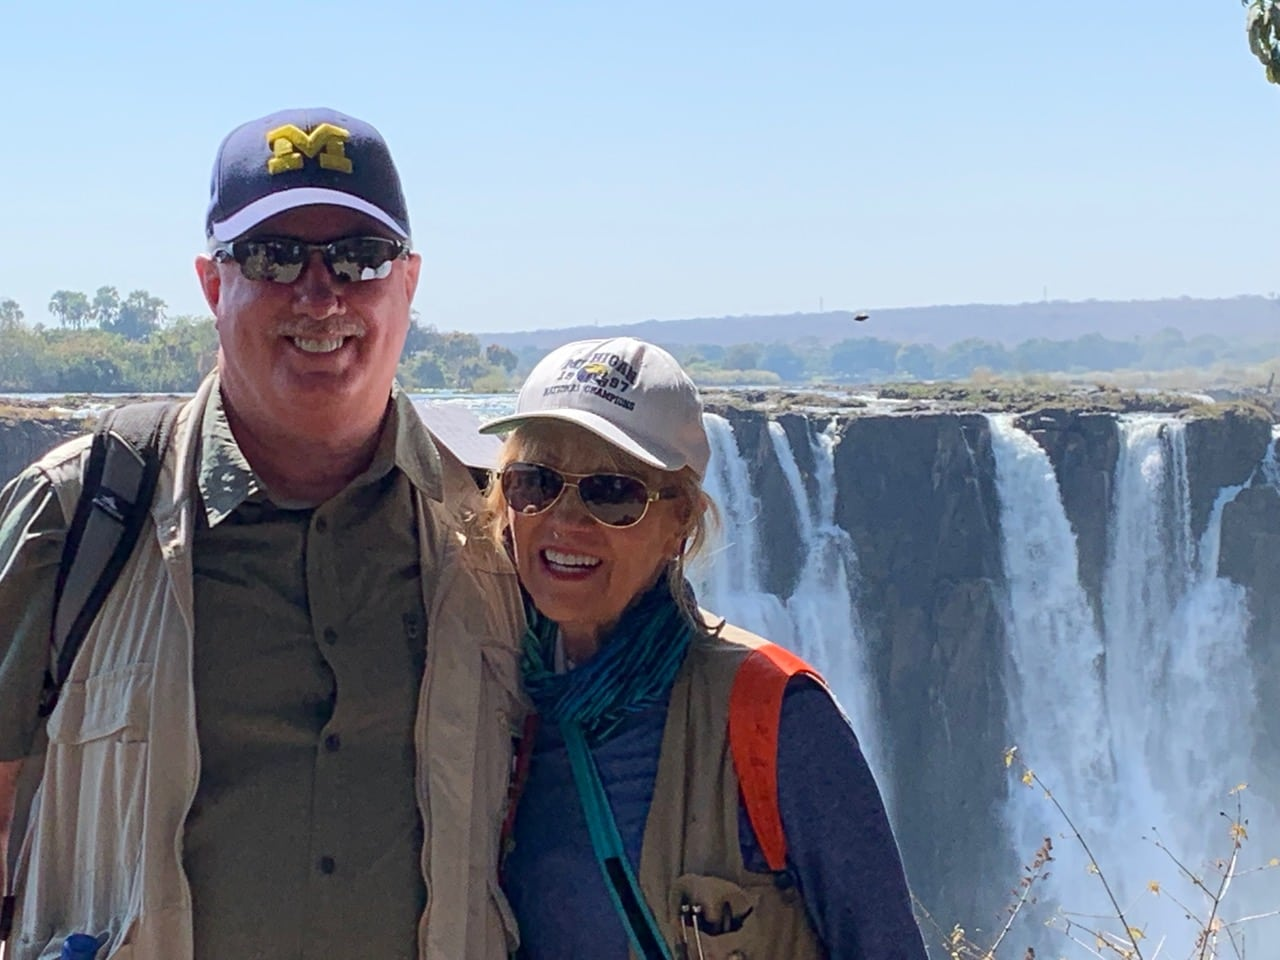 Mark Oakeson, '80, met fellow alumna Judy Erwin Wilkerson, '66, during a visit to Victoria Falls in Zimbabwe. Mark's wife, Lu, took the photo.